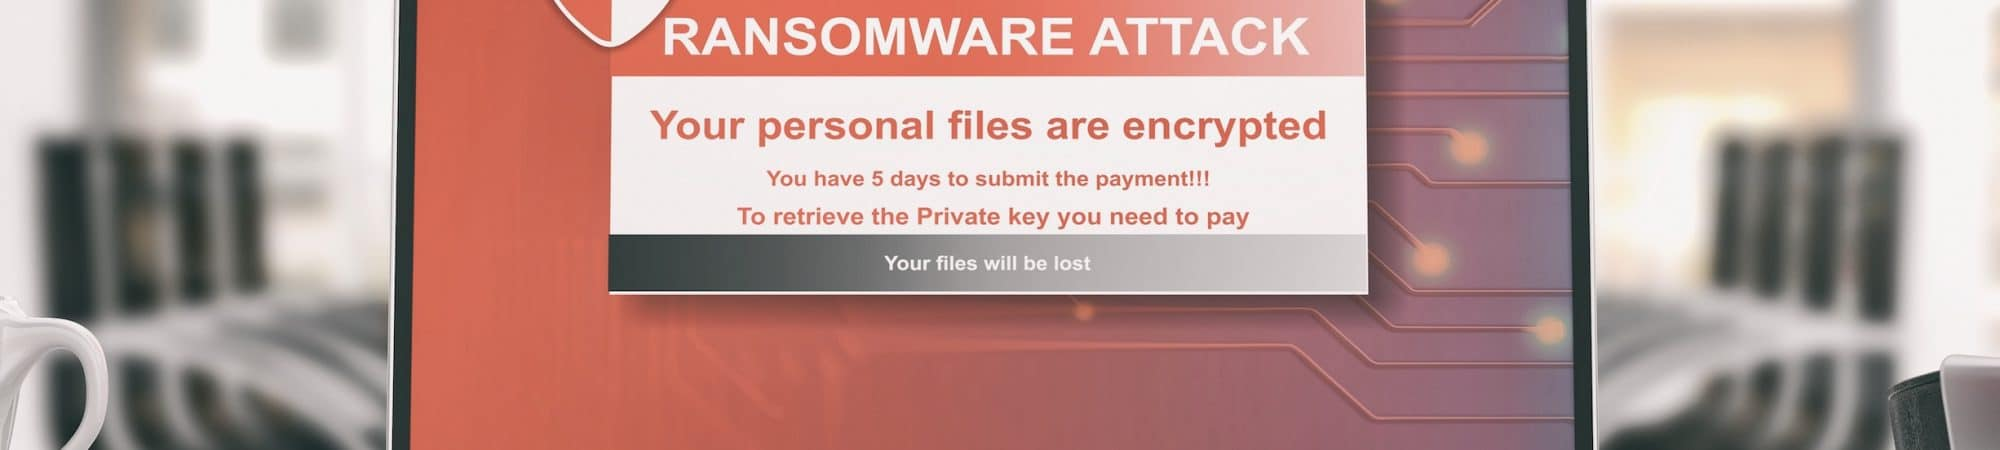 ransomware-2000x450